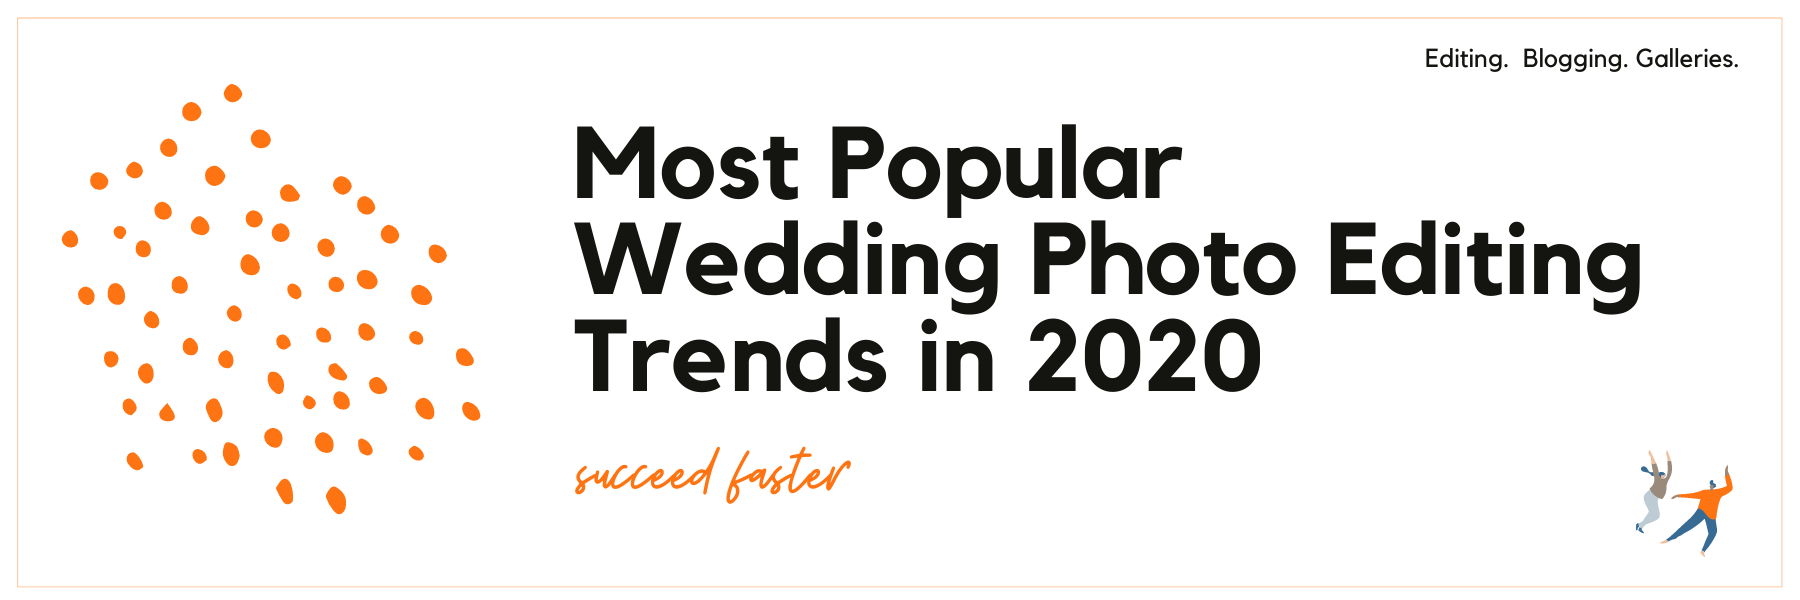 Wedding Photo Editing Trends